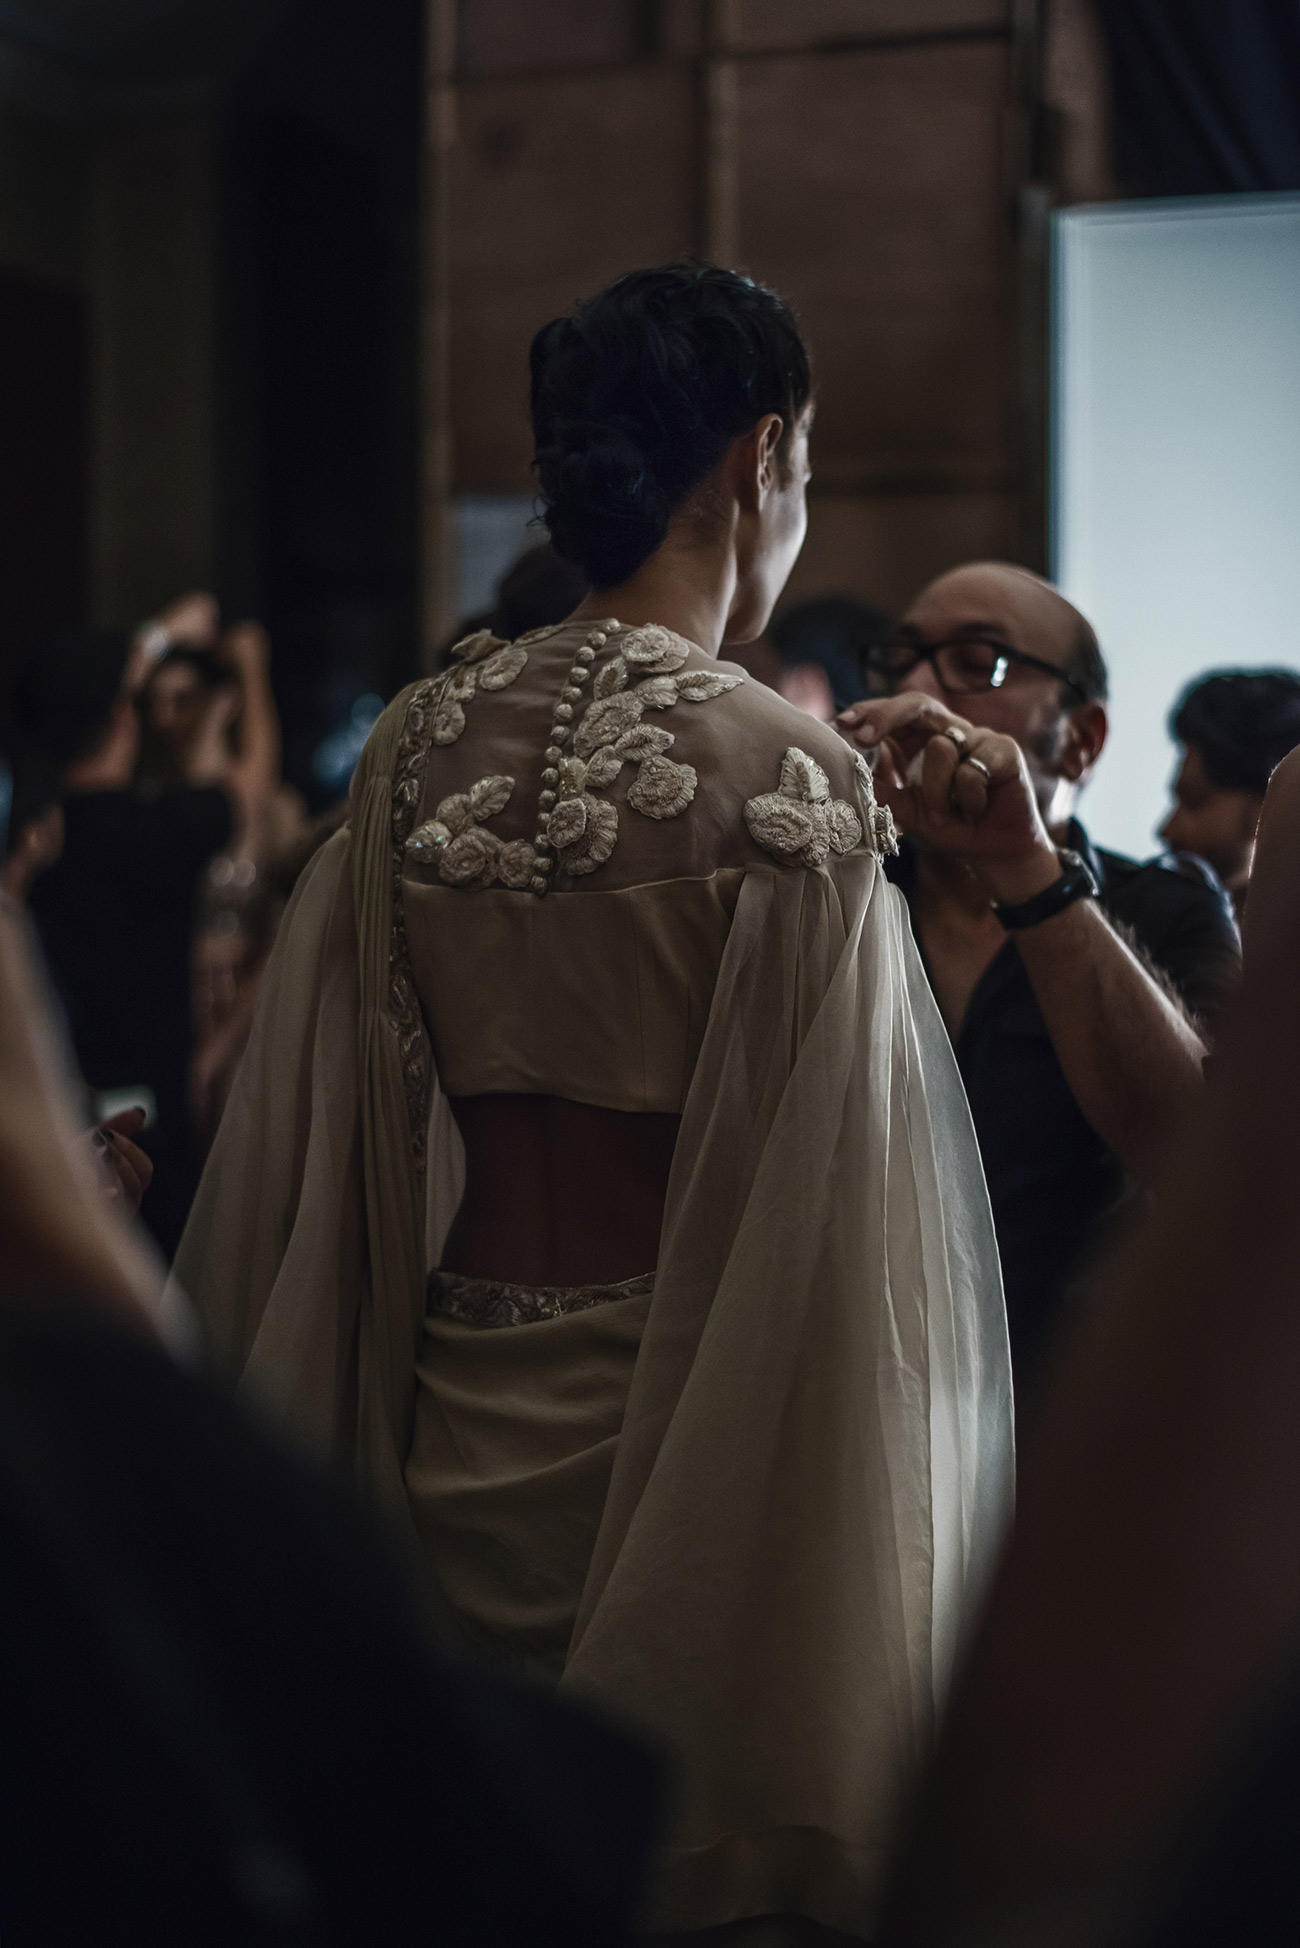 Backstage FDCI India Couture Week 2016 Photo by RAWKY KSH 9